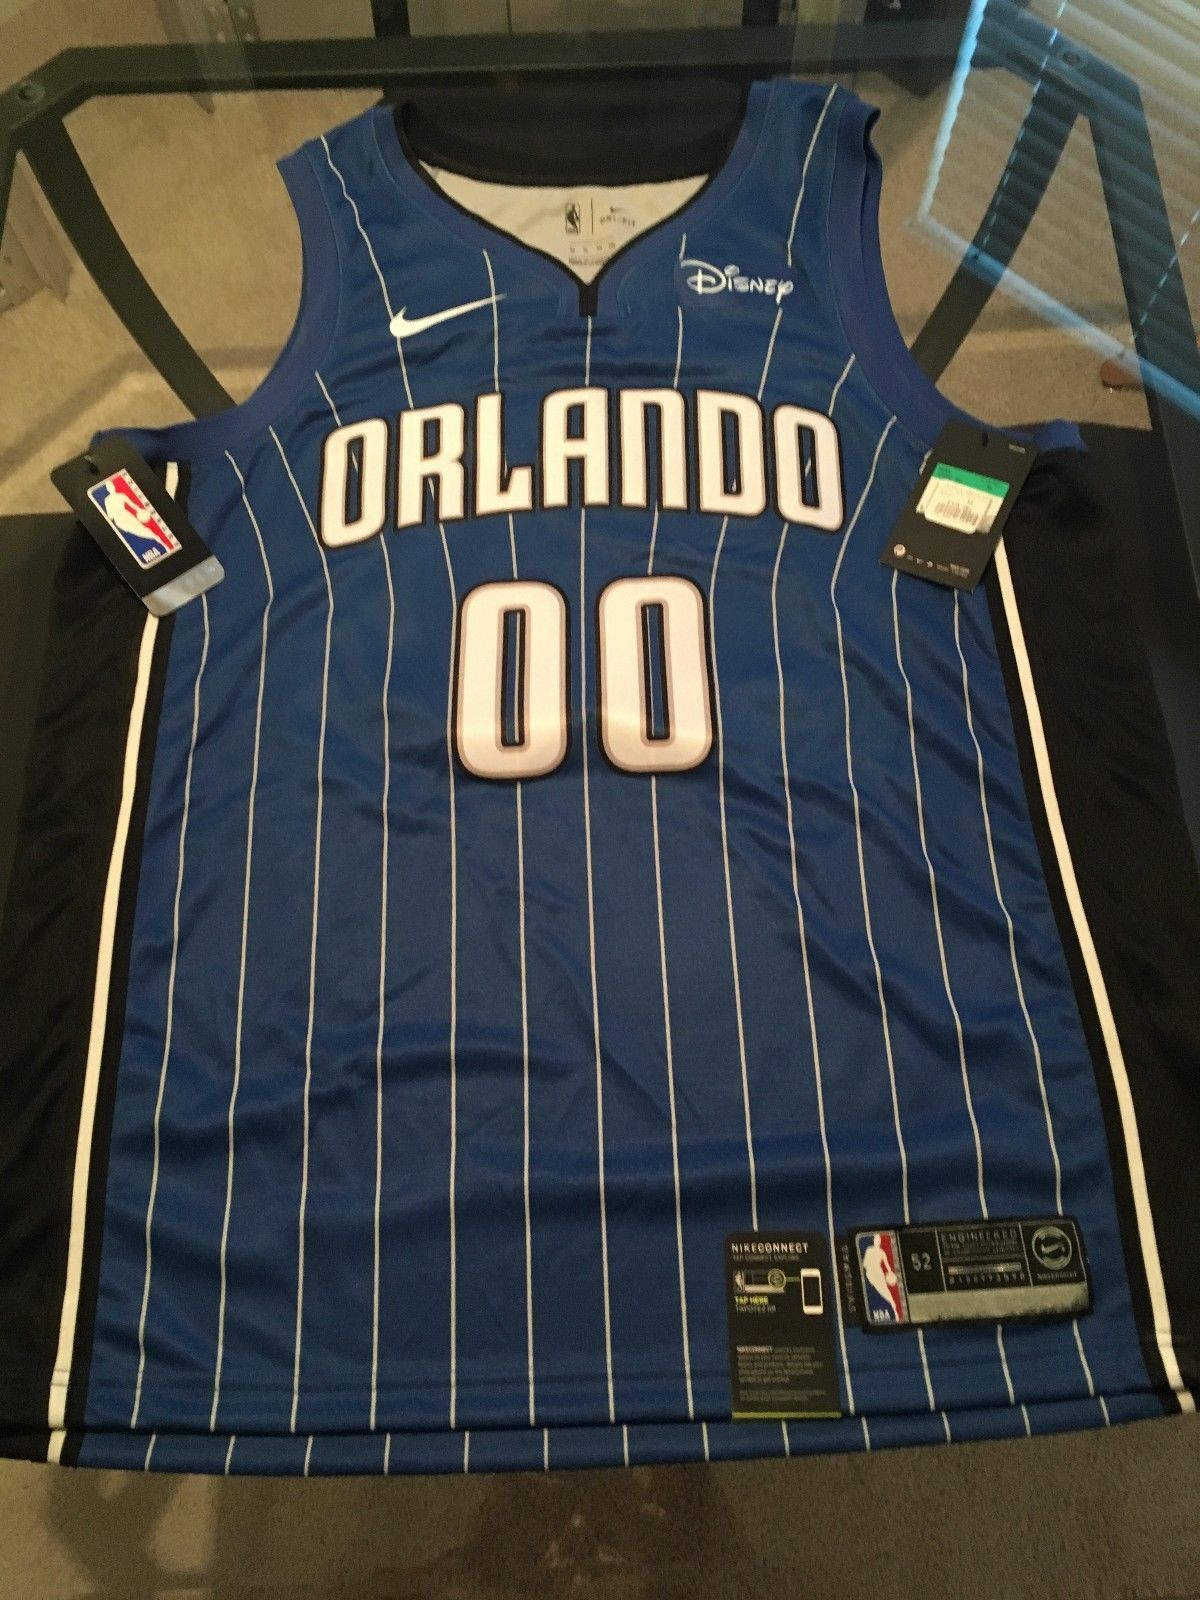 51402fa287c BRAND NEW AUTHENTIC Disney NIKE Orlando Magic JERSEY Aaron Gordon XL 52  (eBay Link)